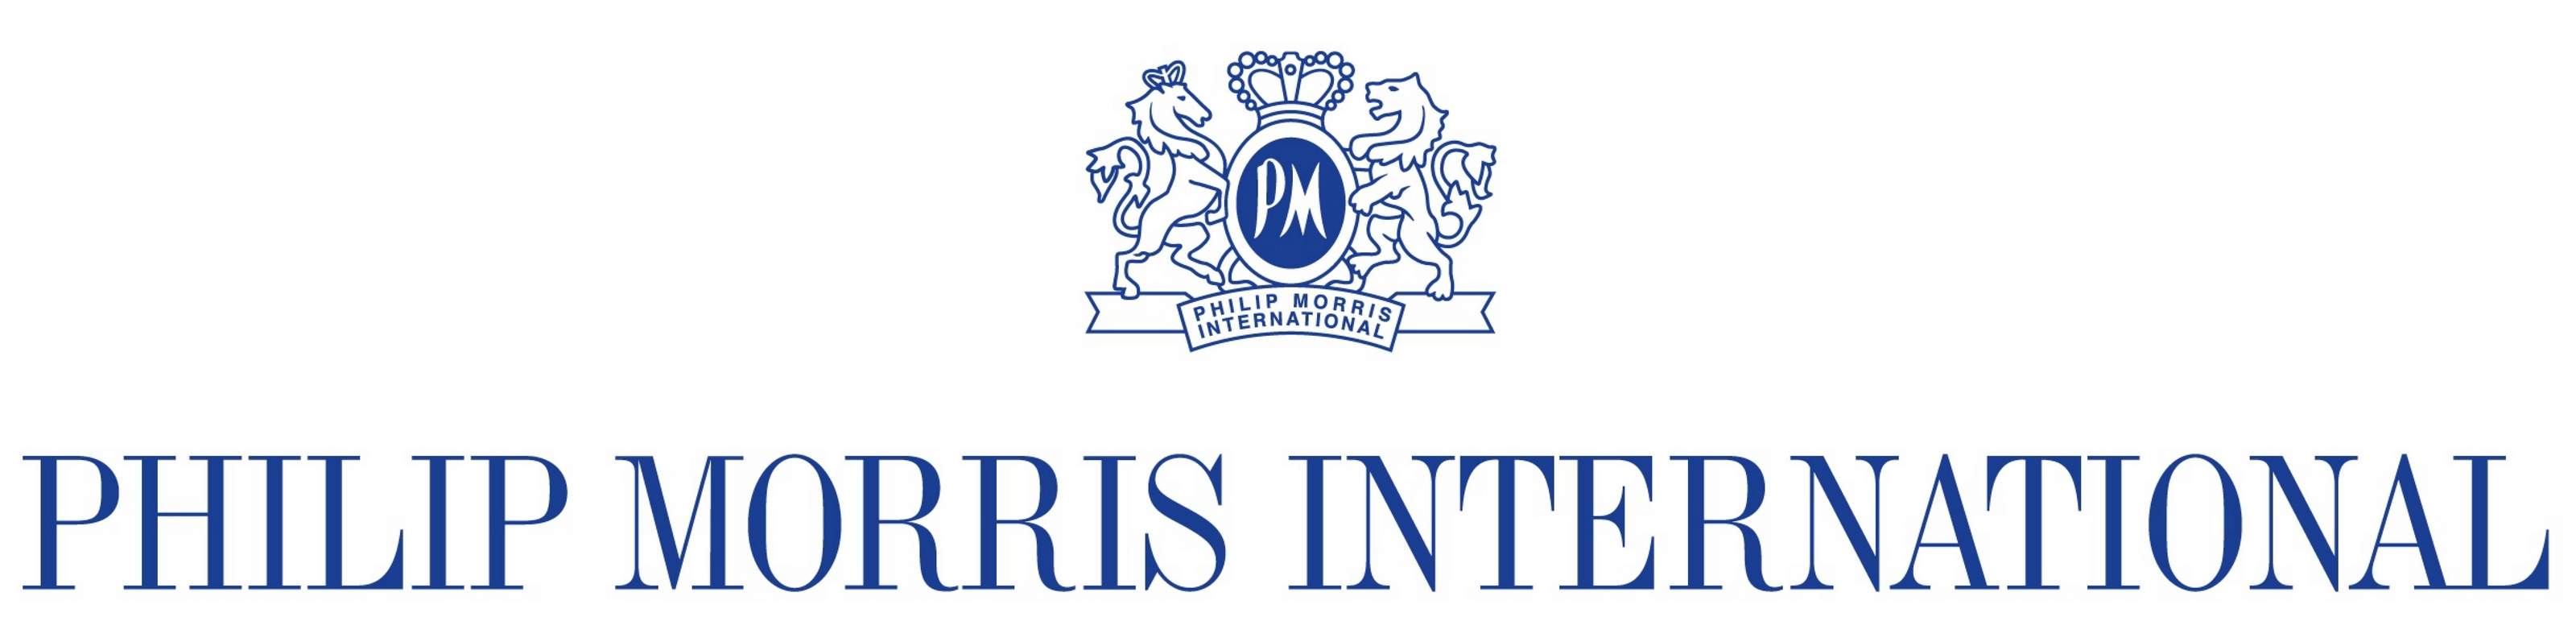 Philip Morris International.jpg